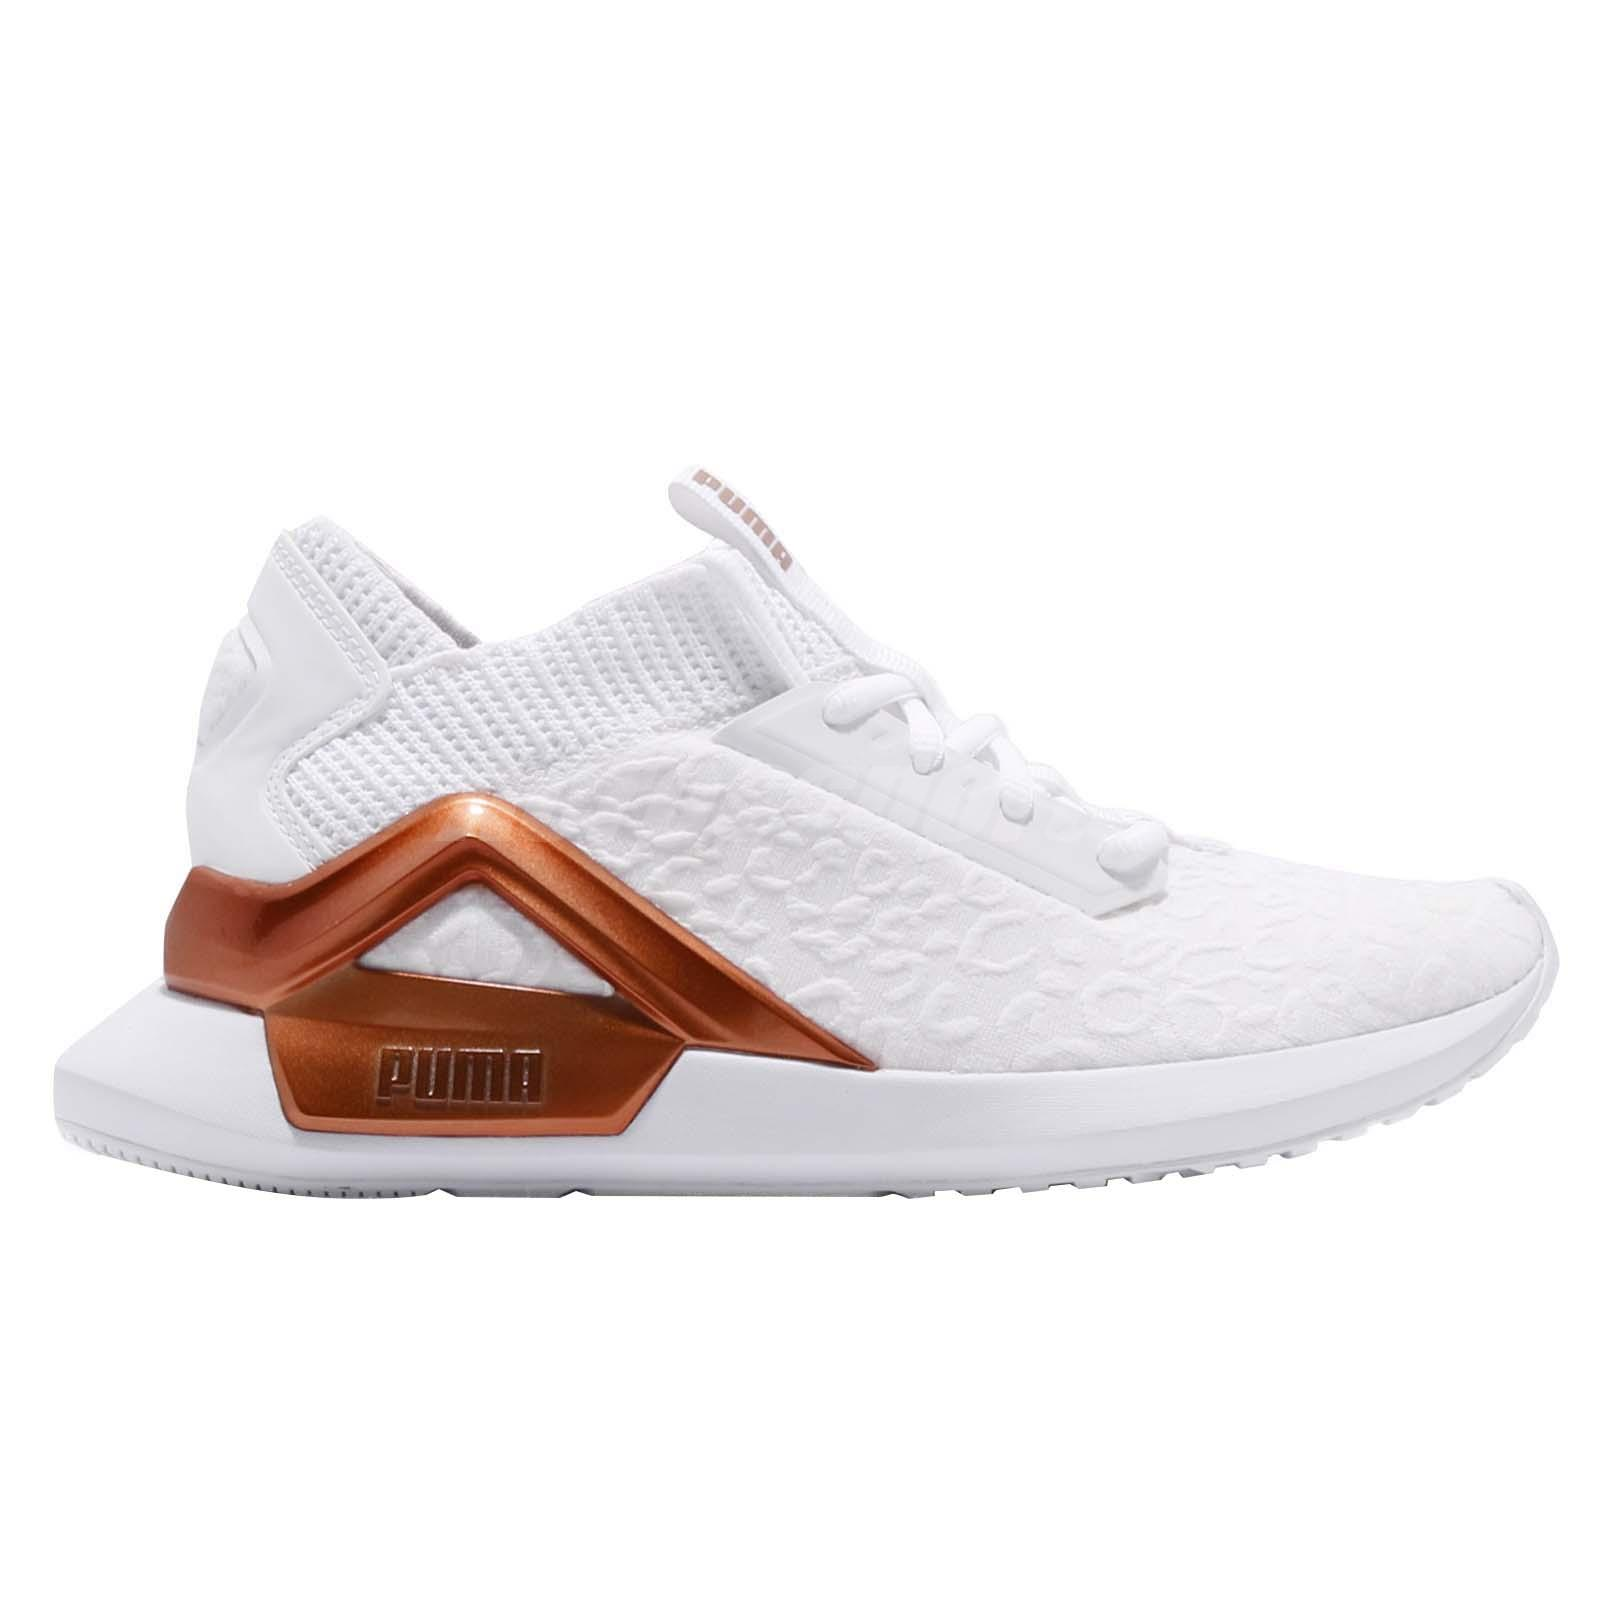 6e28ab0f02c3 Puma Rogue Metallic Wns White Rose Gold Women Cross Training Shoes ...